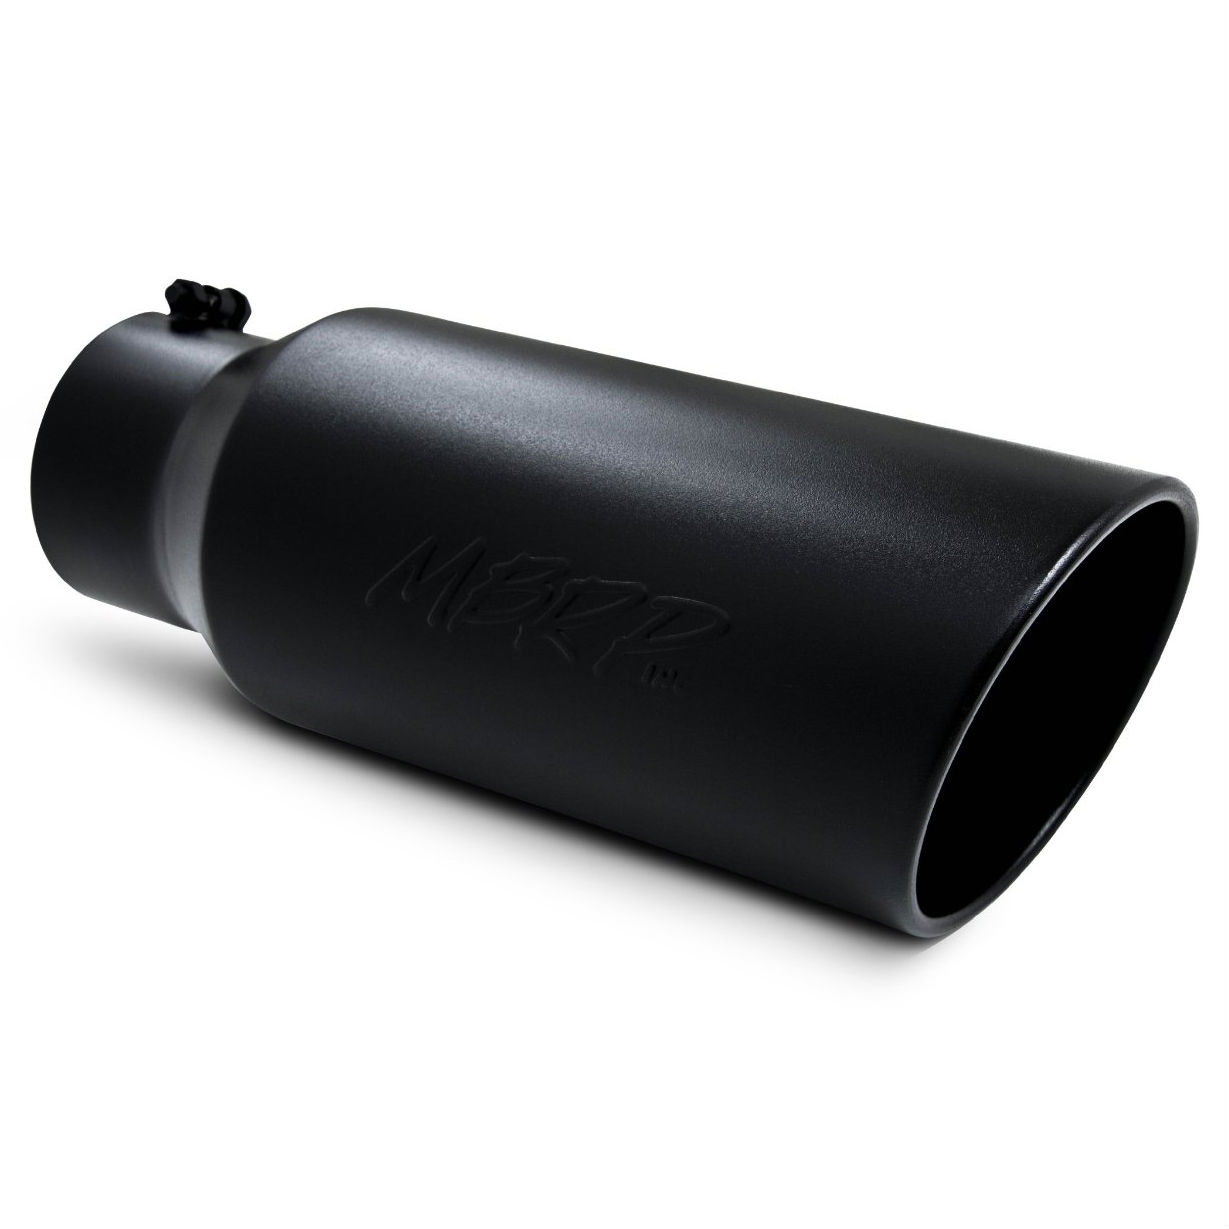 6 inch exhaust tips with 4 and 5 inch